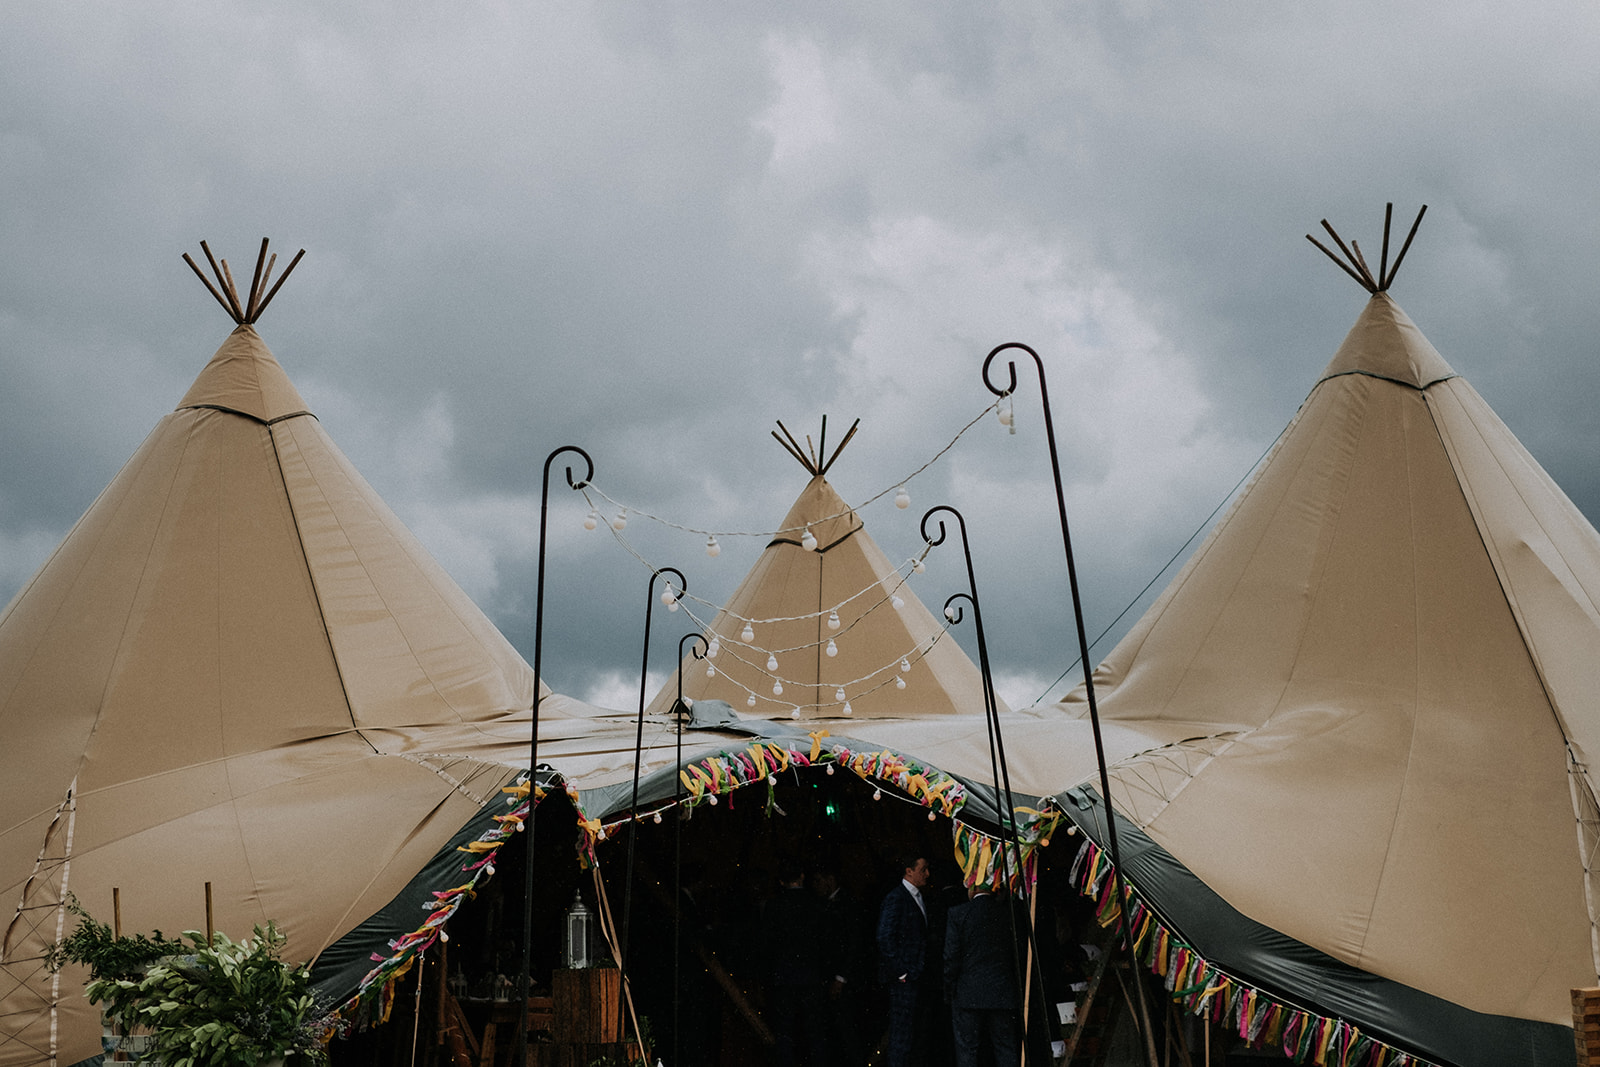 tipi wedding entrance covered in colourful rag bunting - cattows farm wedding with sami tipi